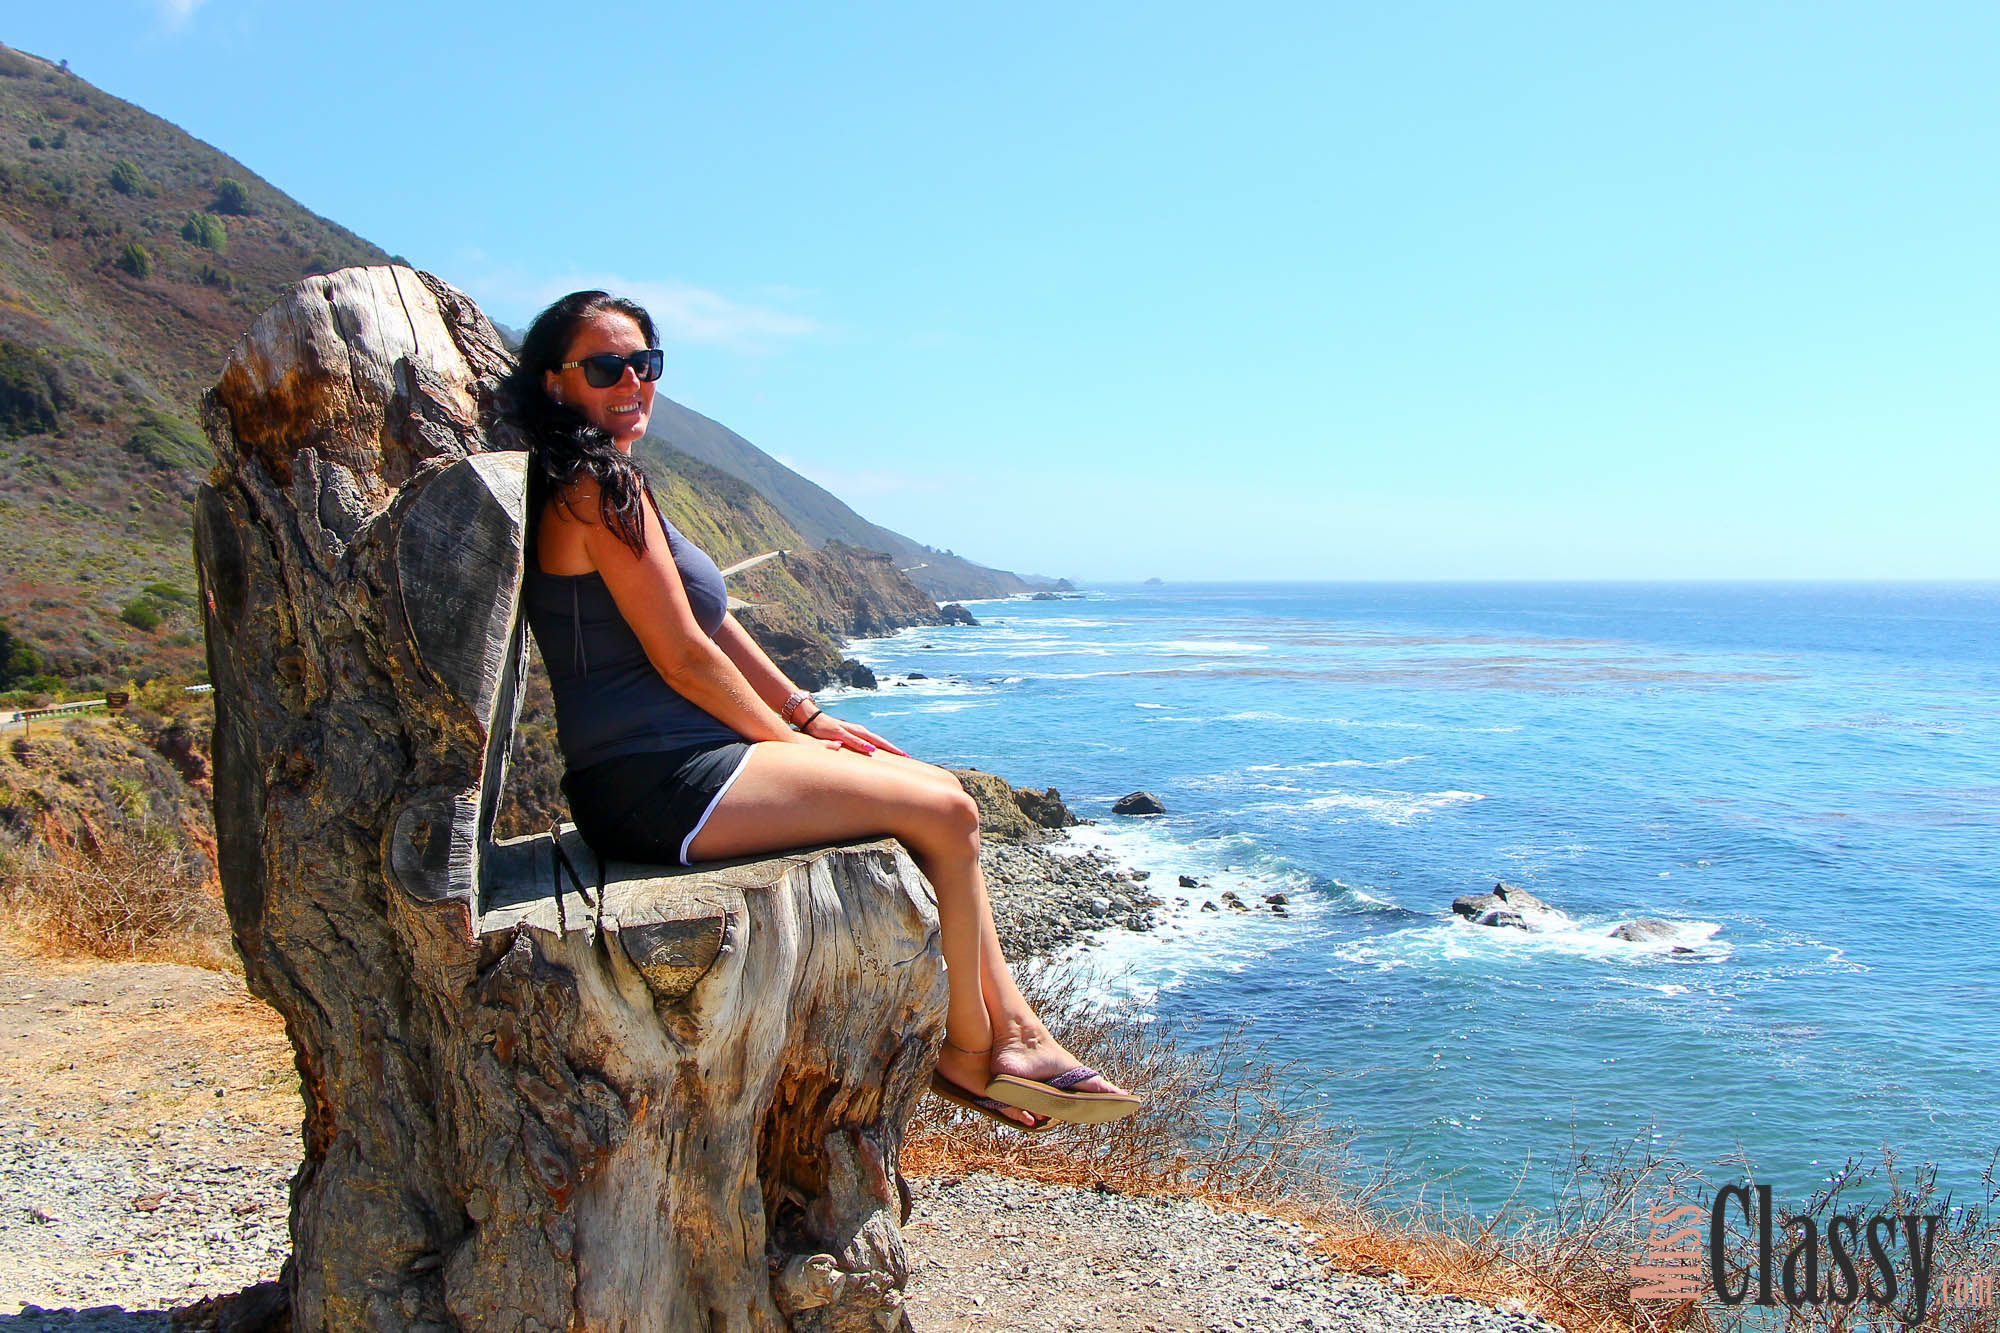 Big Sur - Highway 1 - Coastal Highway - USA - Kalifornien